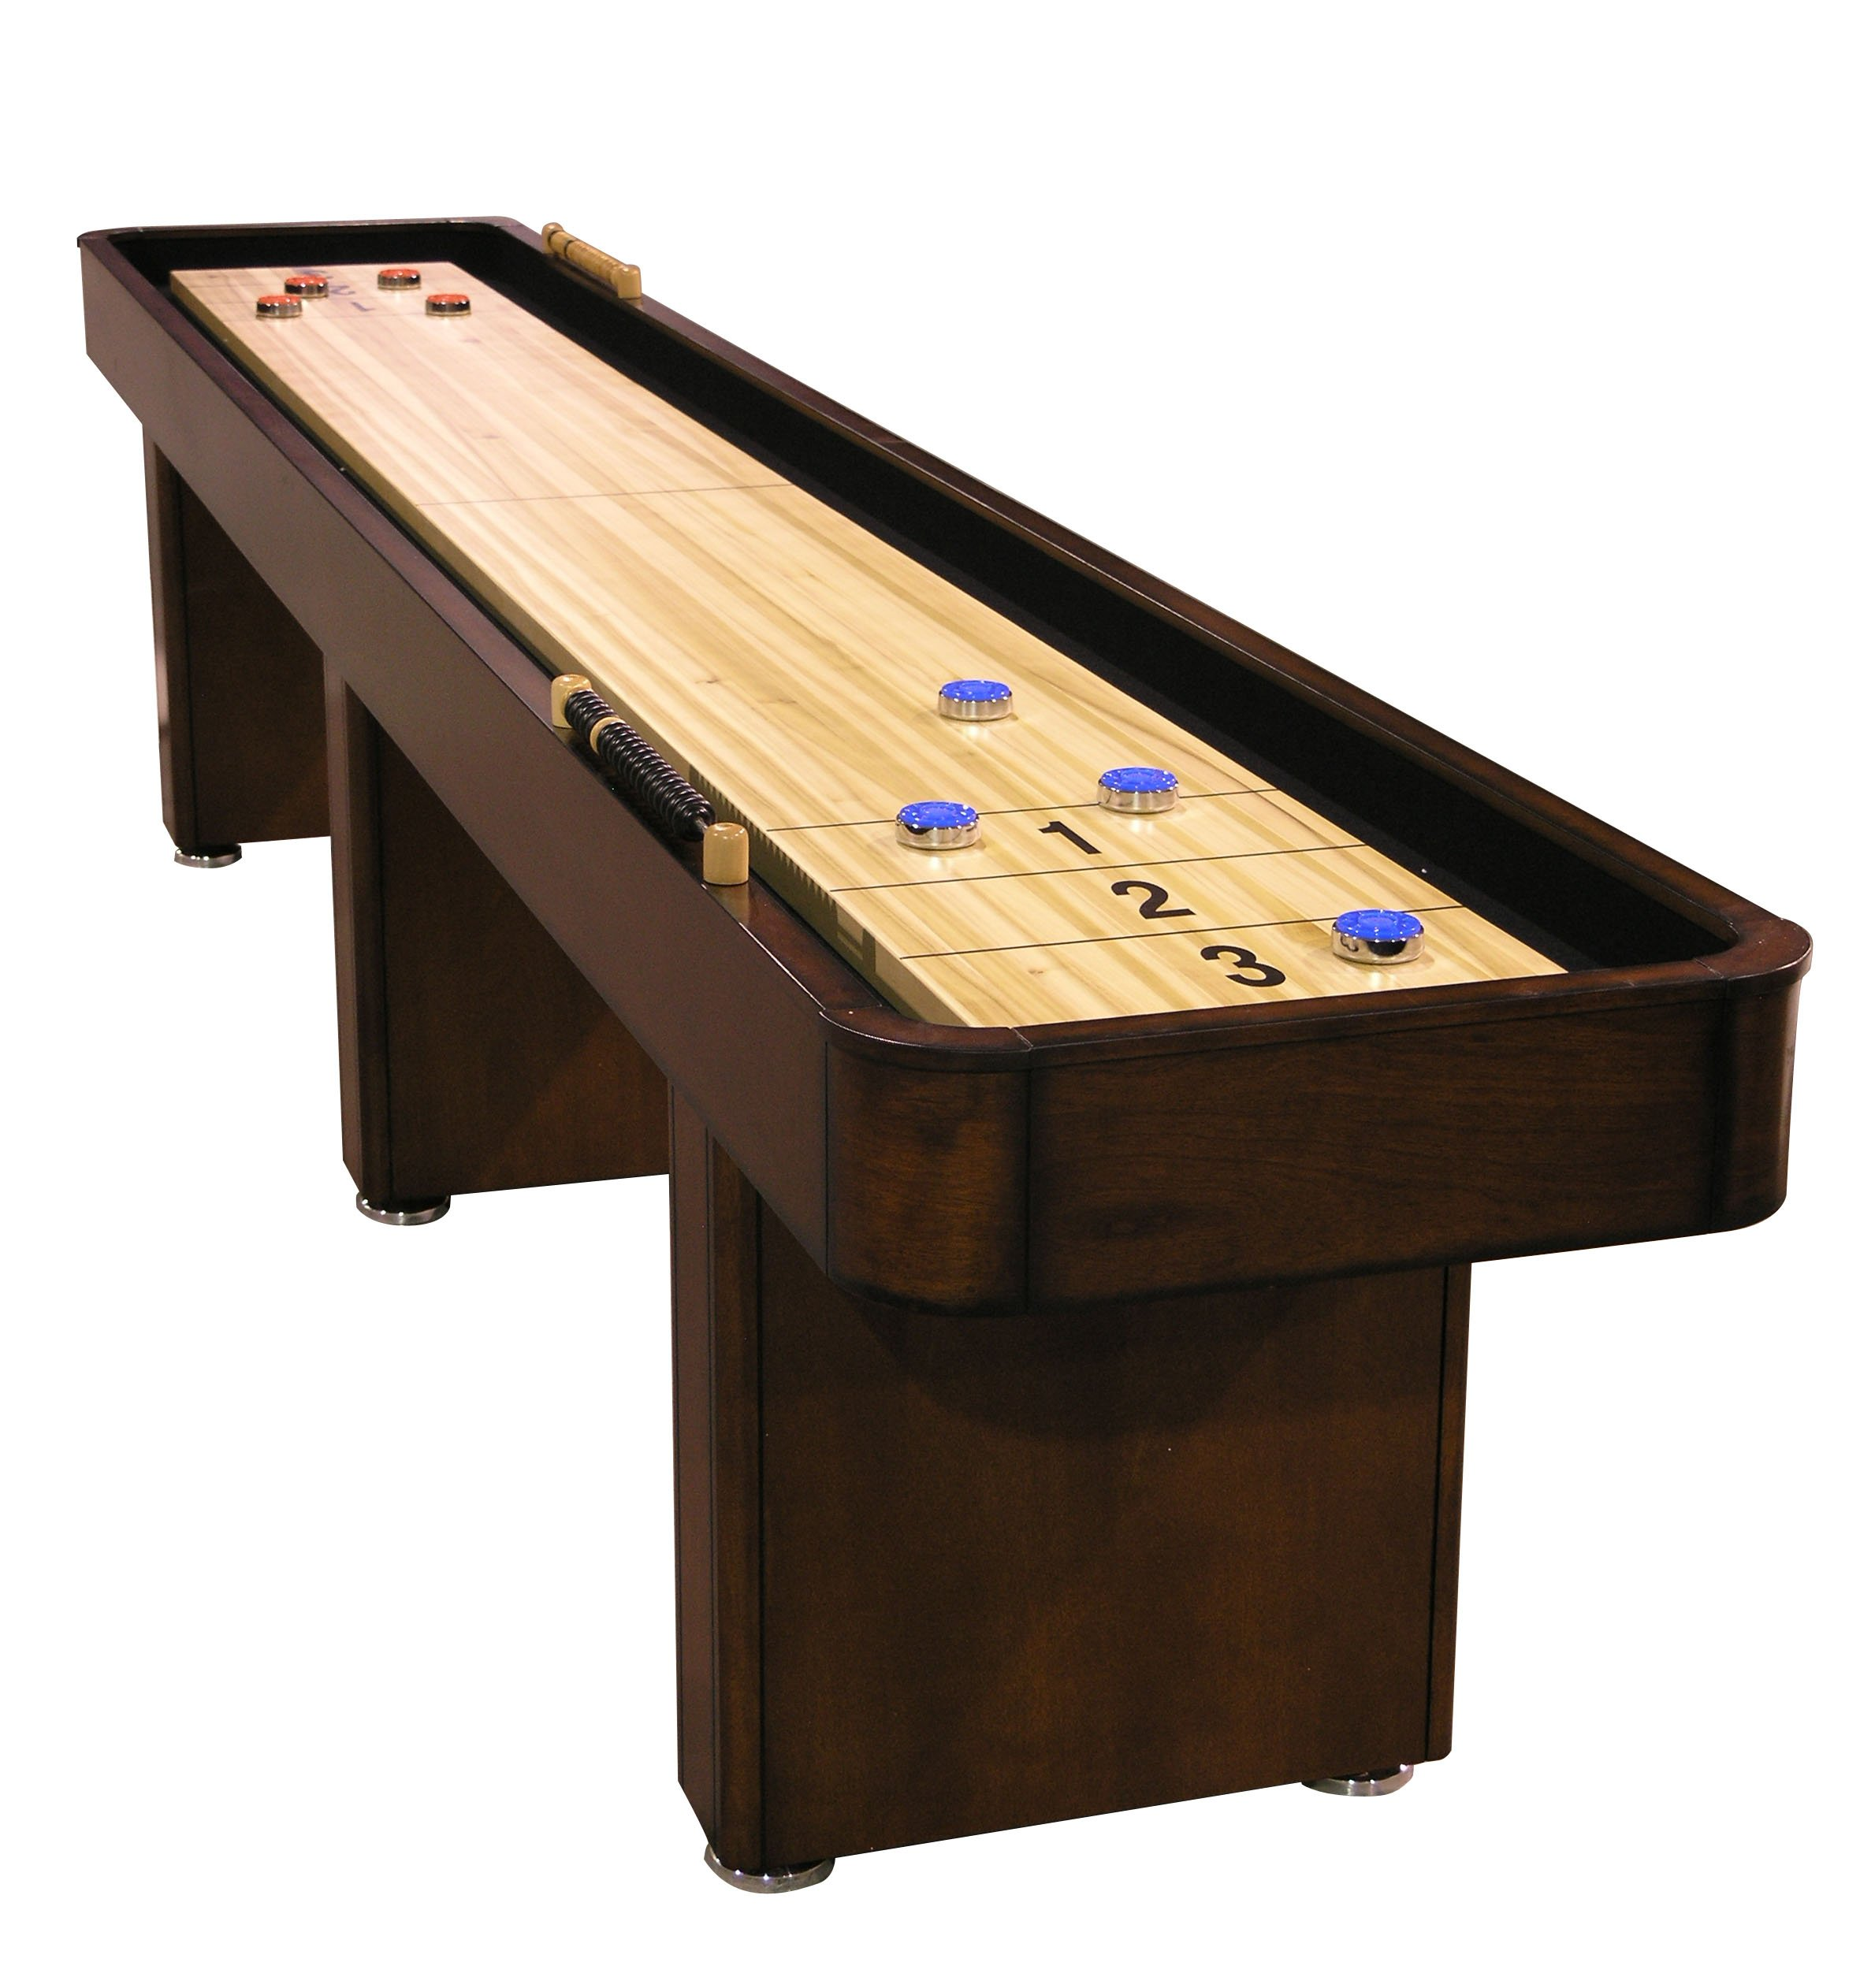 Fairview Game Rooms 12' Shuffleboard Table, in Chestnut Finish by Fairview Game Rooms